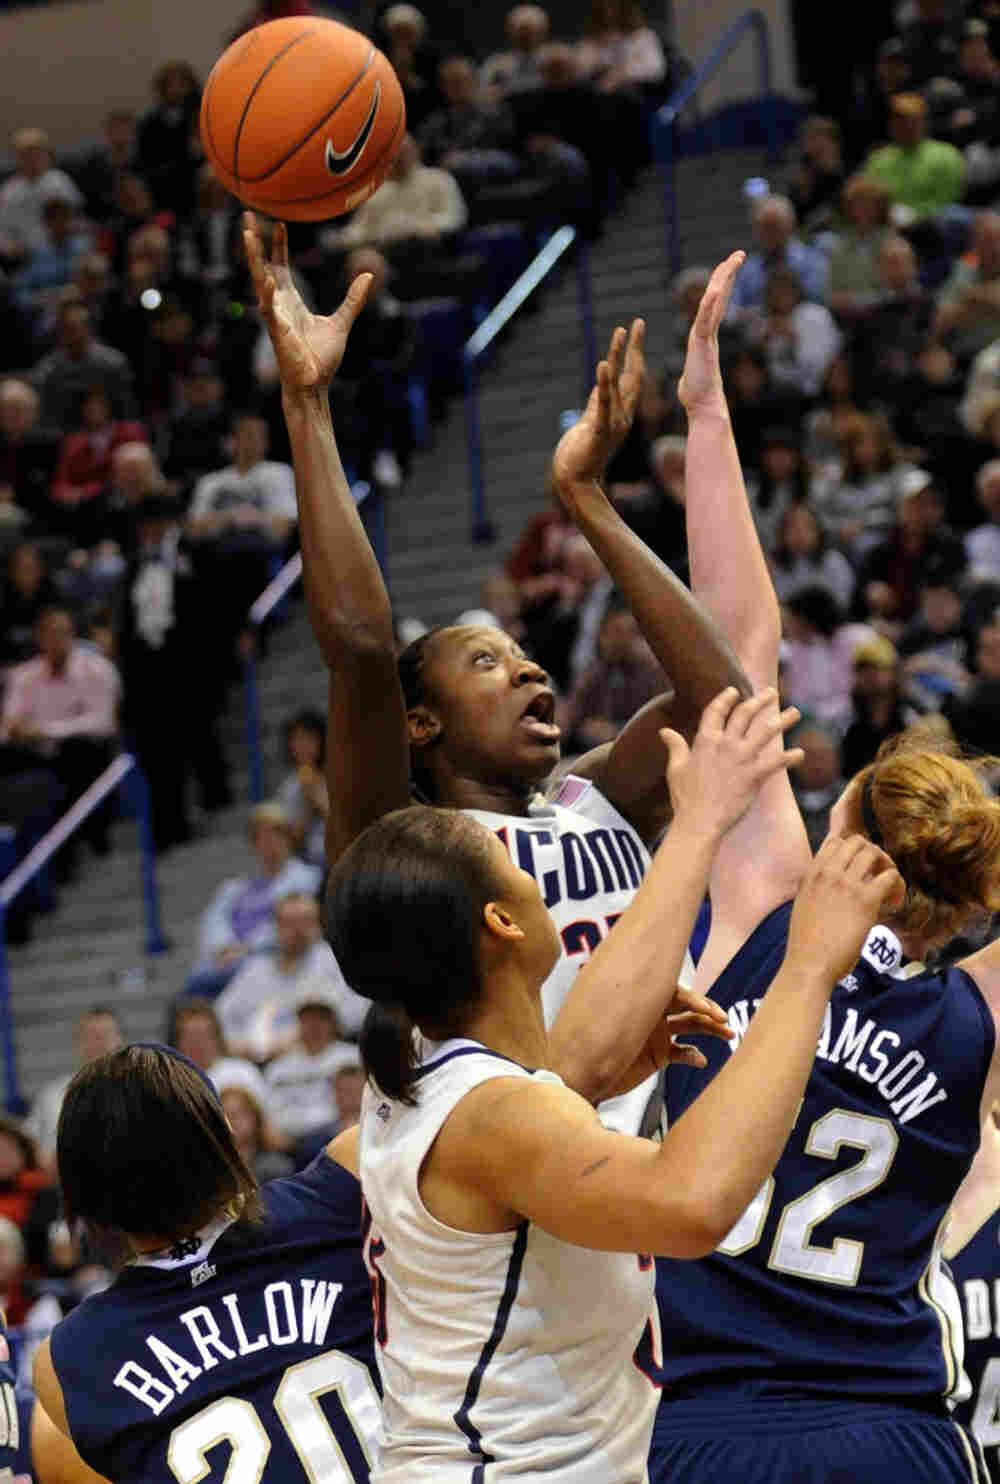 The University of Connecticut women's basketball team won its 71st straight game, setting a new for